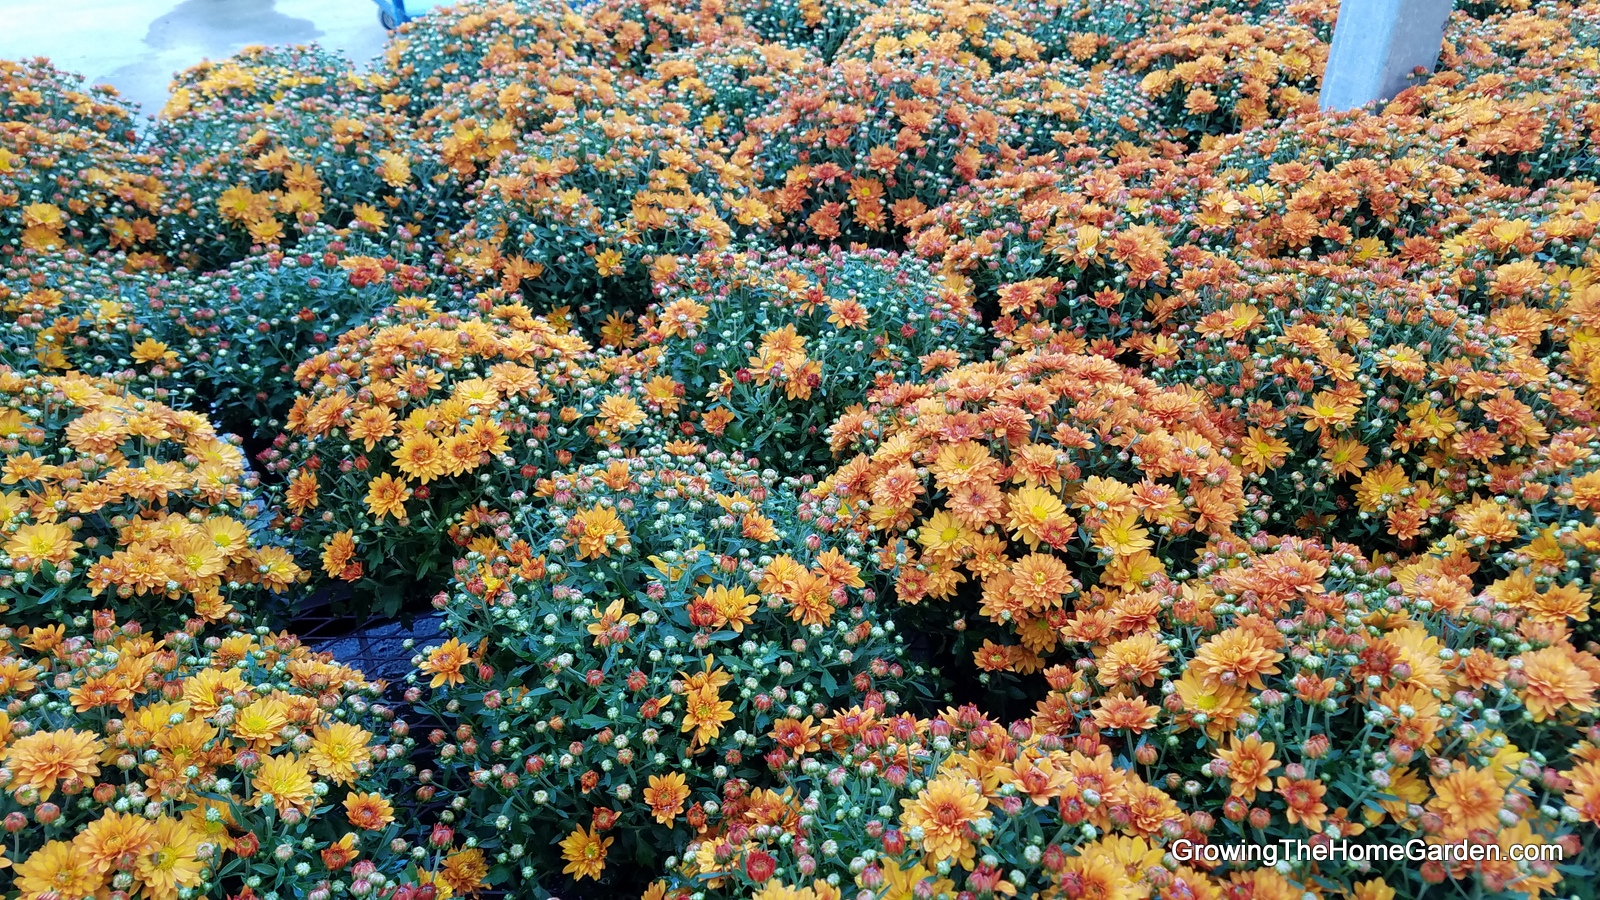 How to Buy Mums (Hardy Chrysanthemum)